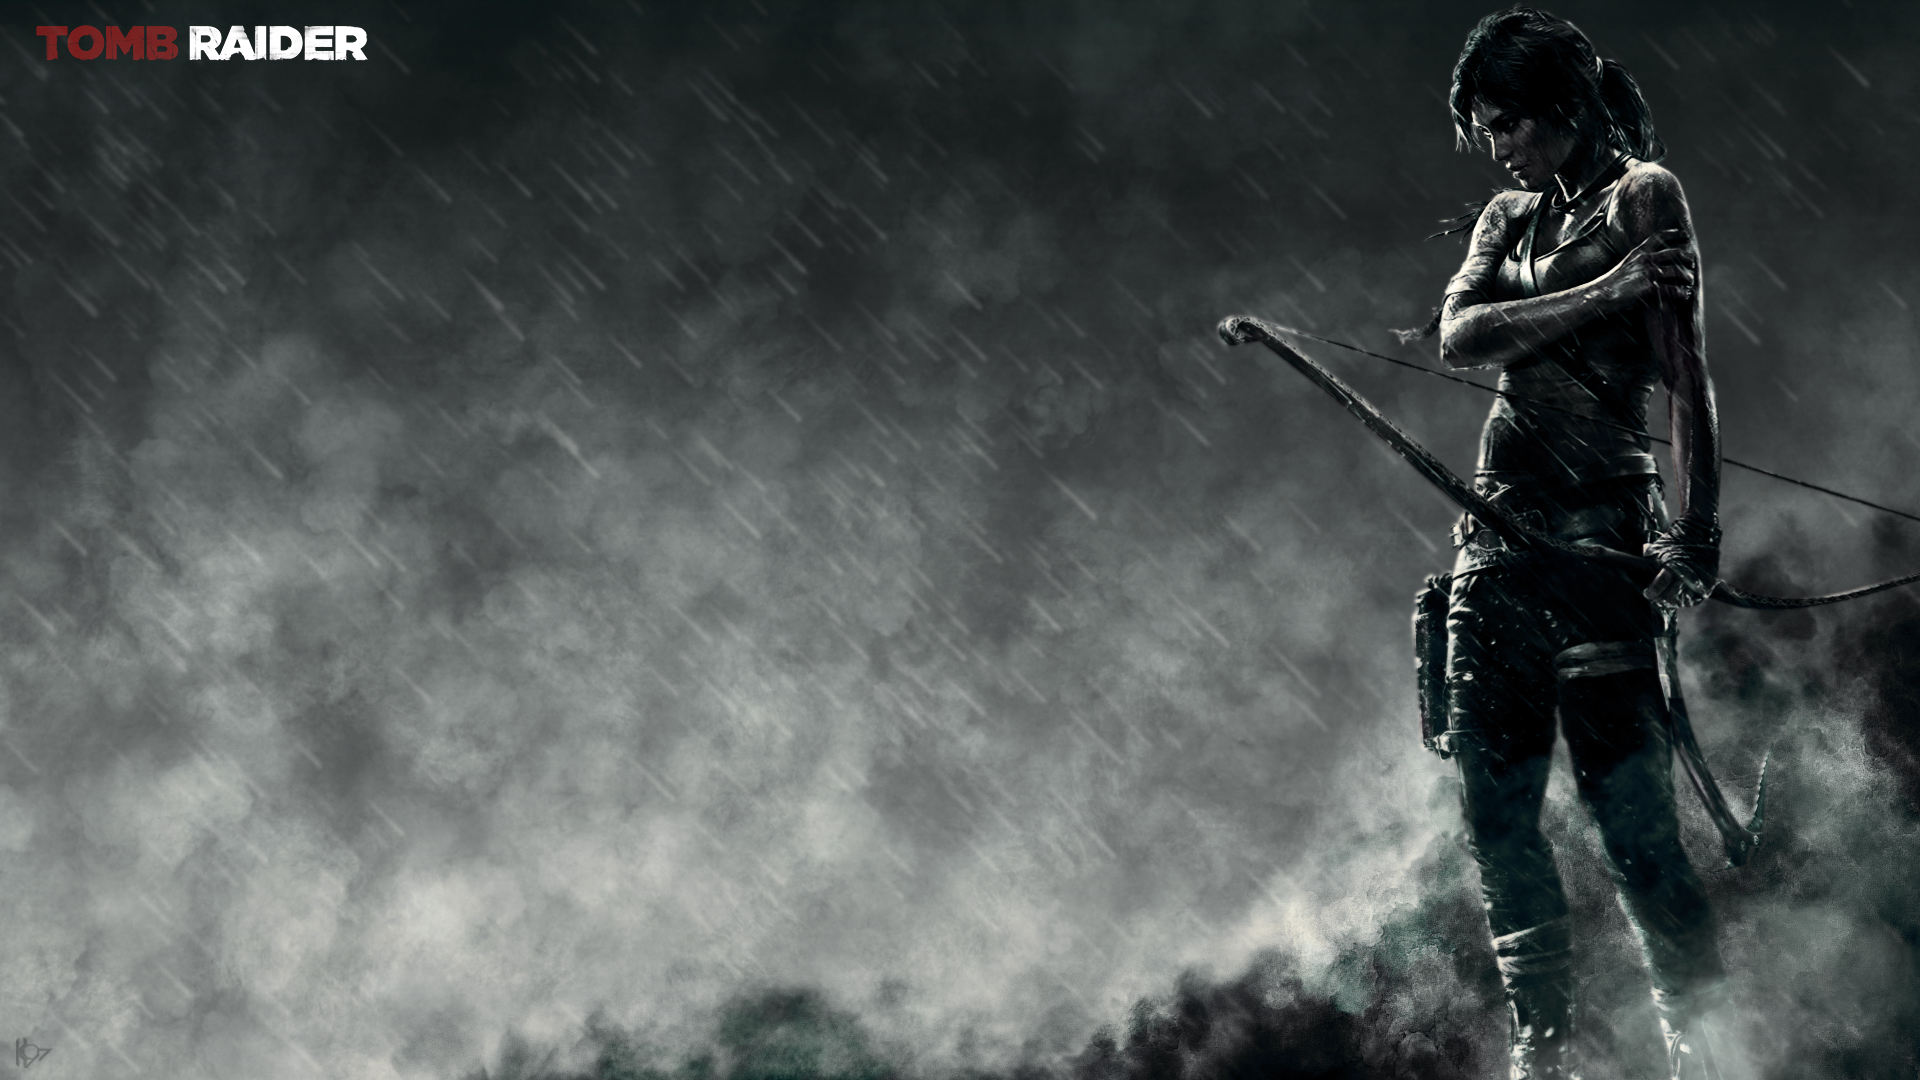 Tomb Raider 2013 Wallpaper: Wallpaper By Karl97 On DeviantArt